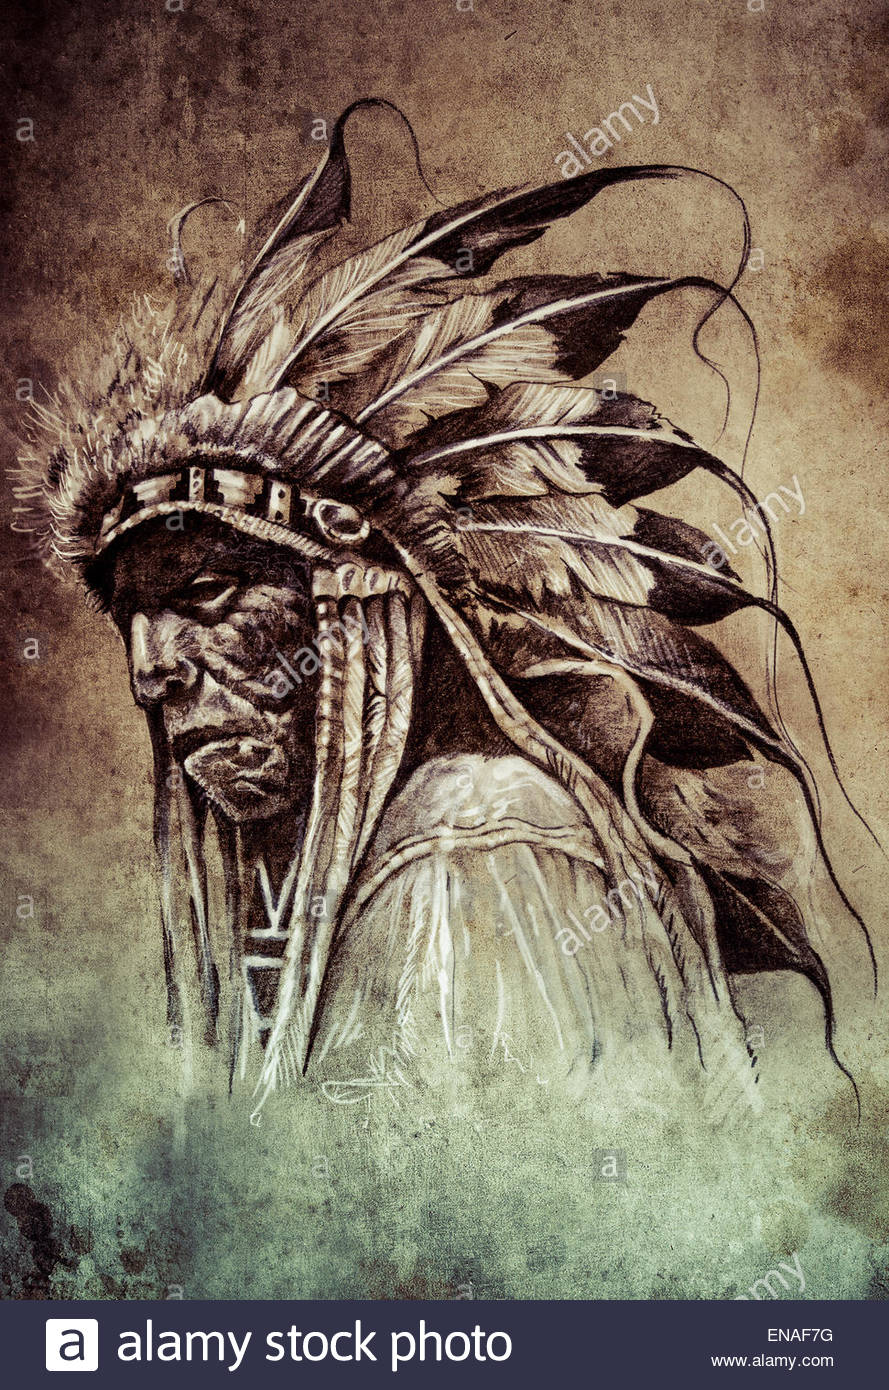 889x1390 Sketch Of Tattoo Art, Native American Indian Head, Chief, Vintage